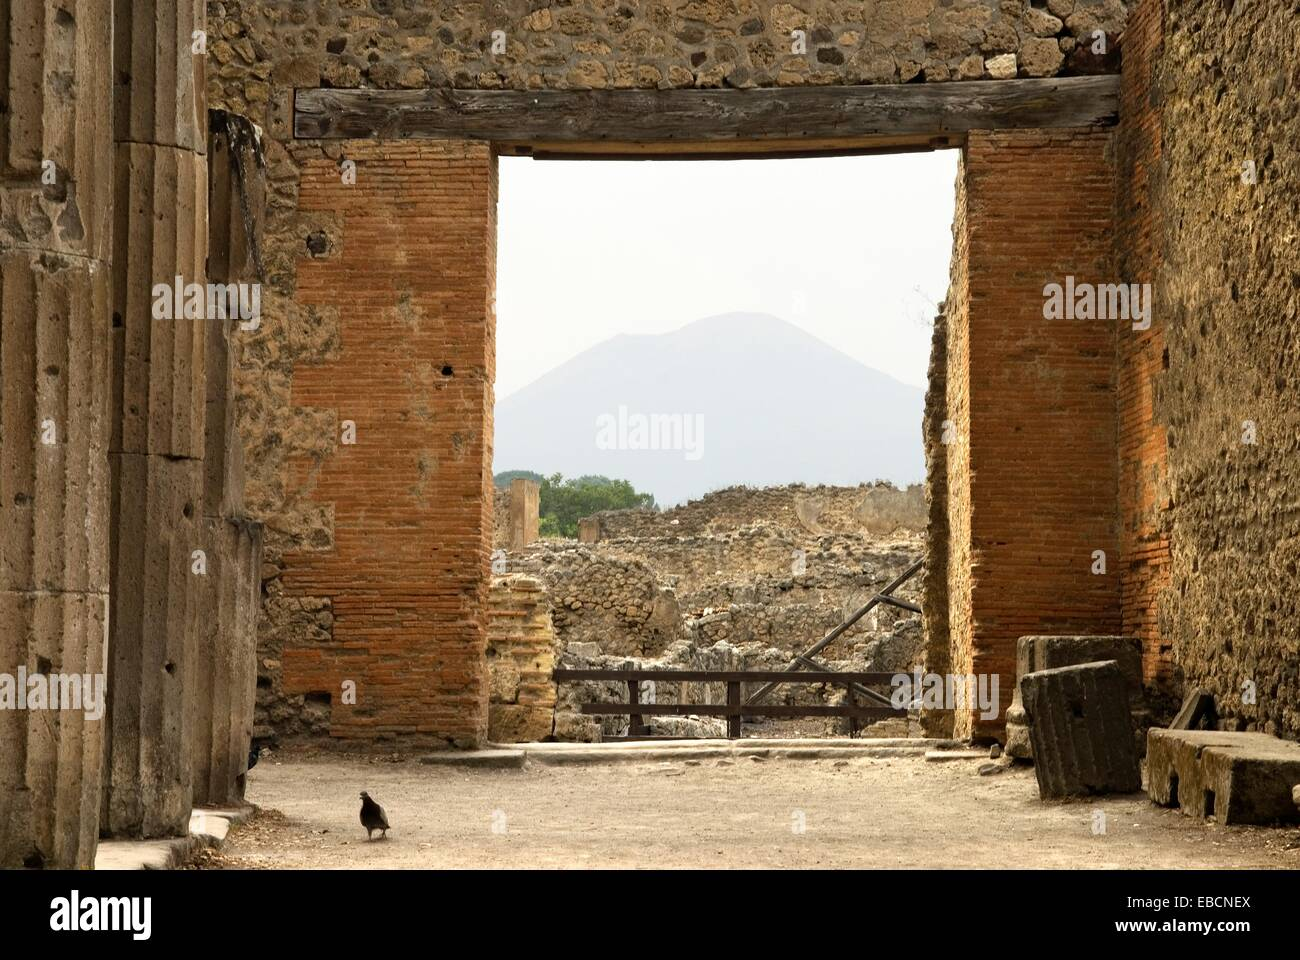 entrance of the Triangular Forum archeological site of Pompeii province of Naples Campania region southern Italy - Stock Image